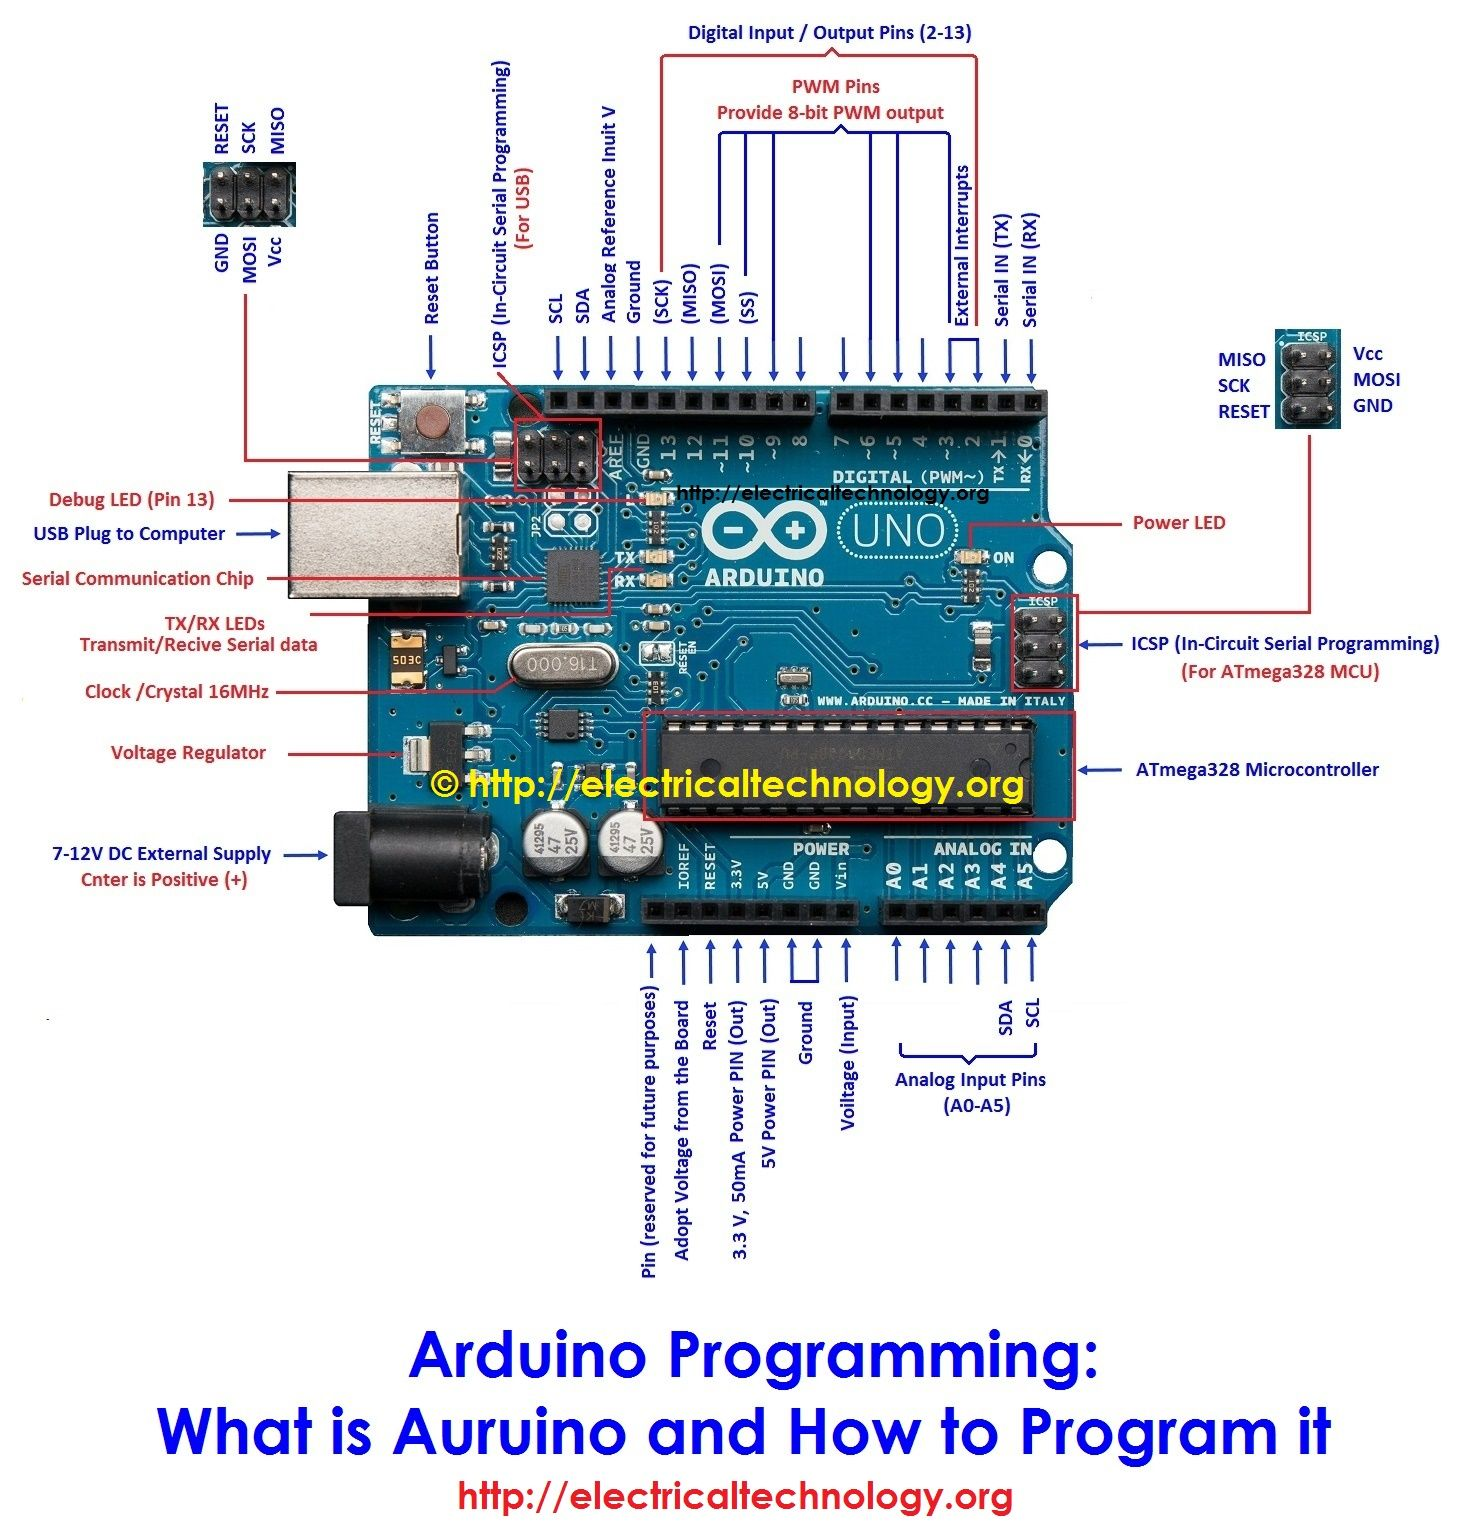 Arduino 5 Minute Tutorials: Lesson 7 - Accelerometers